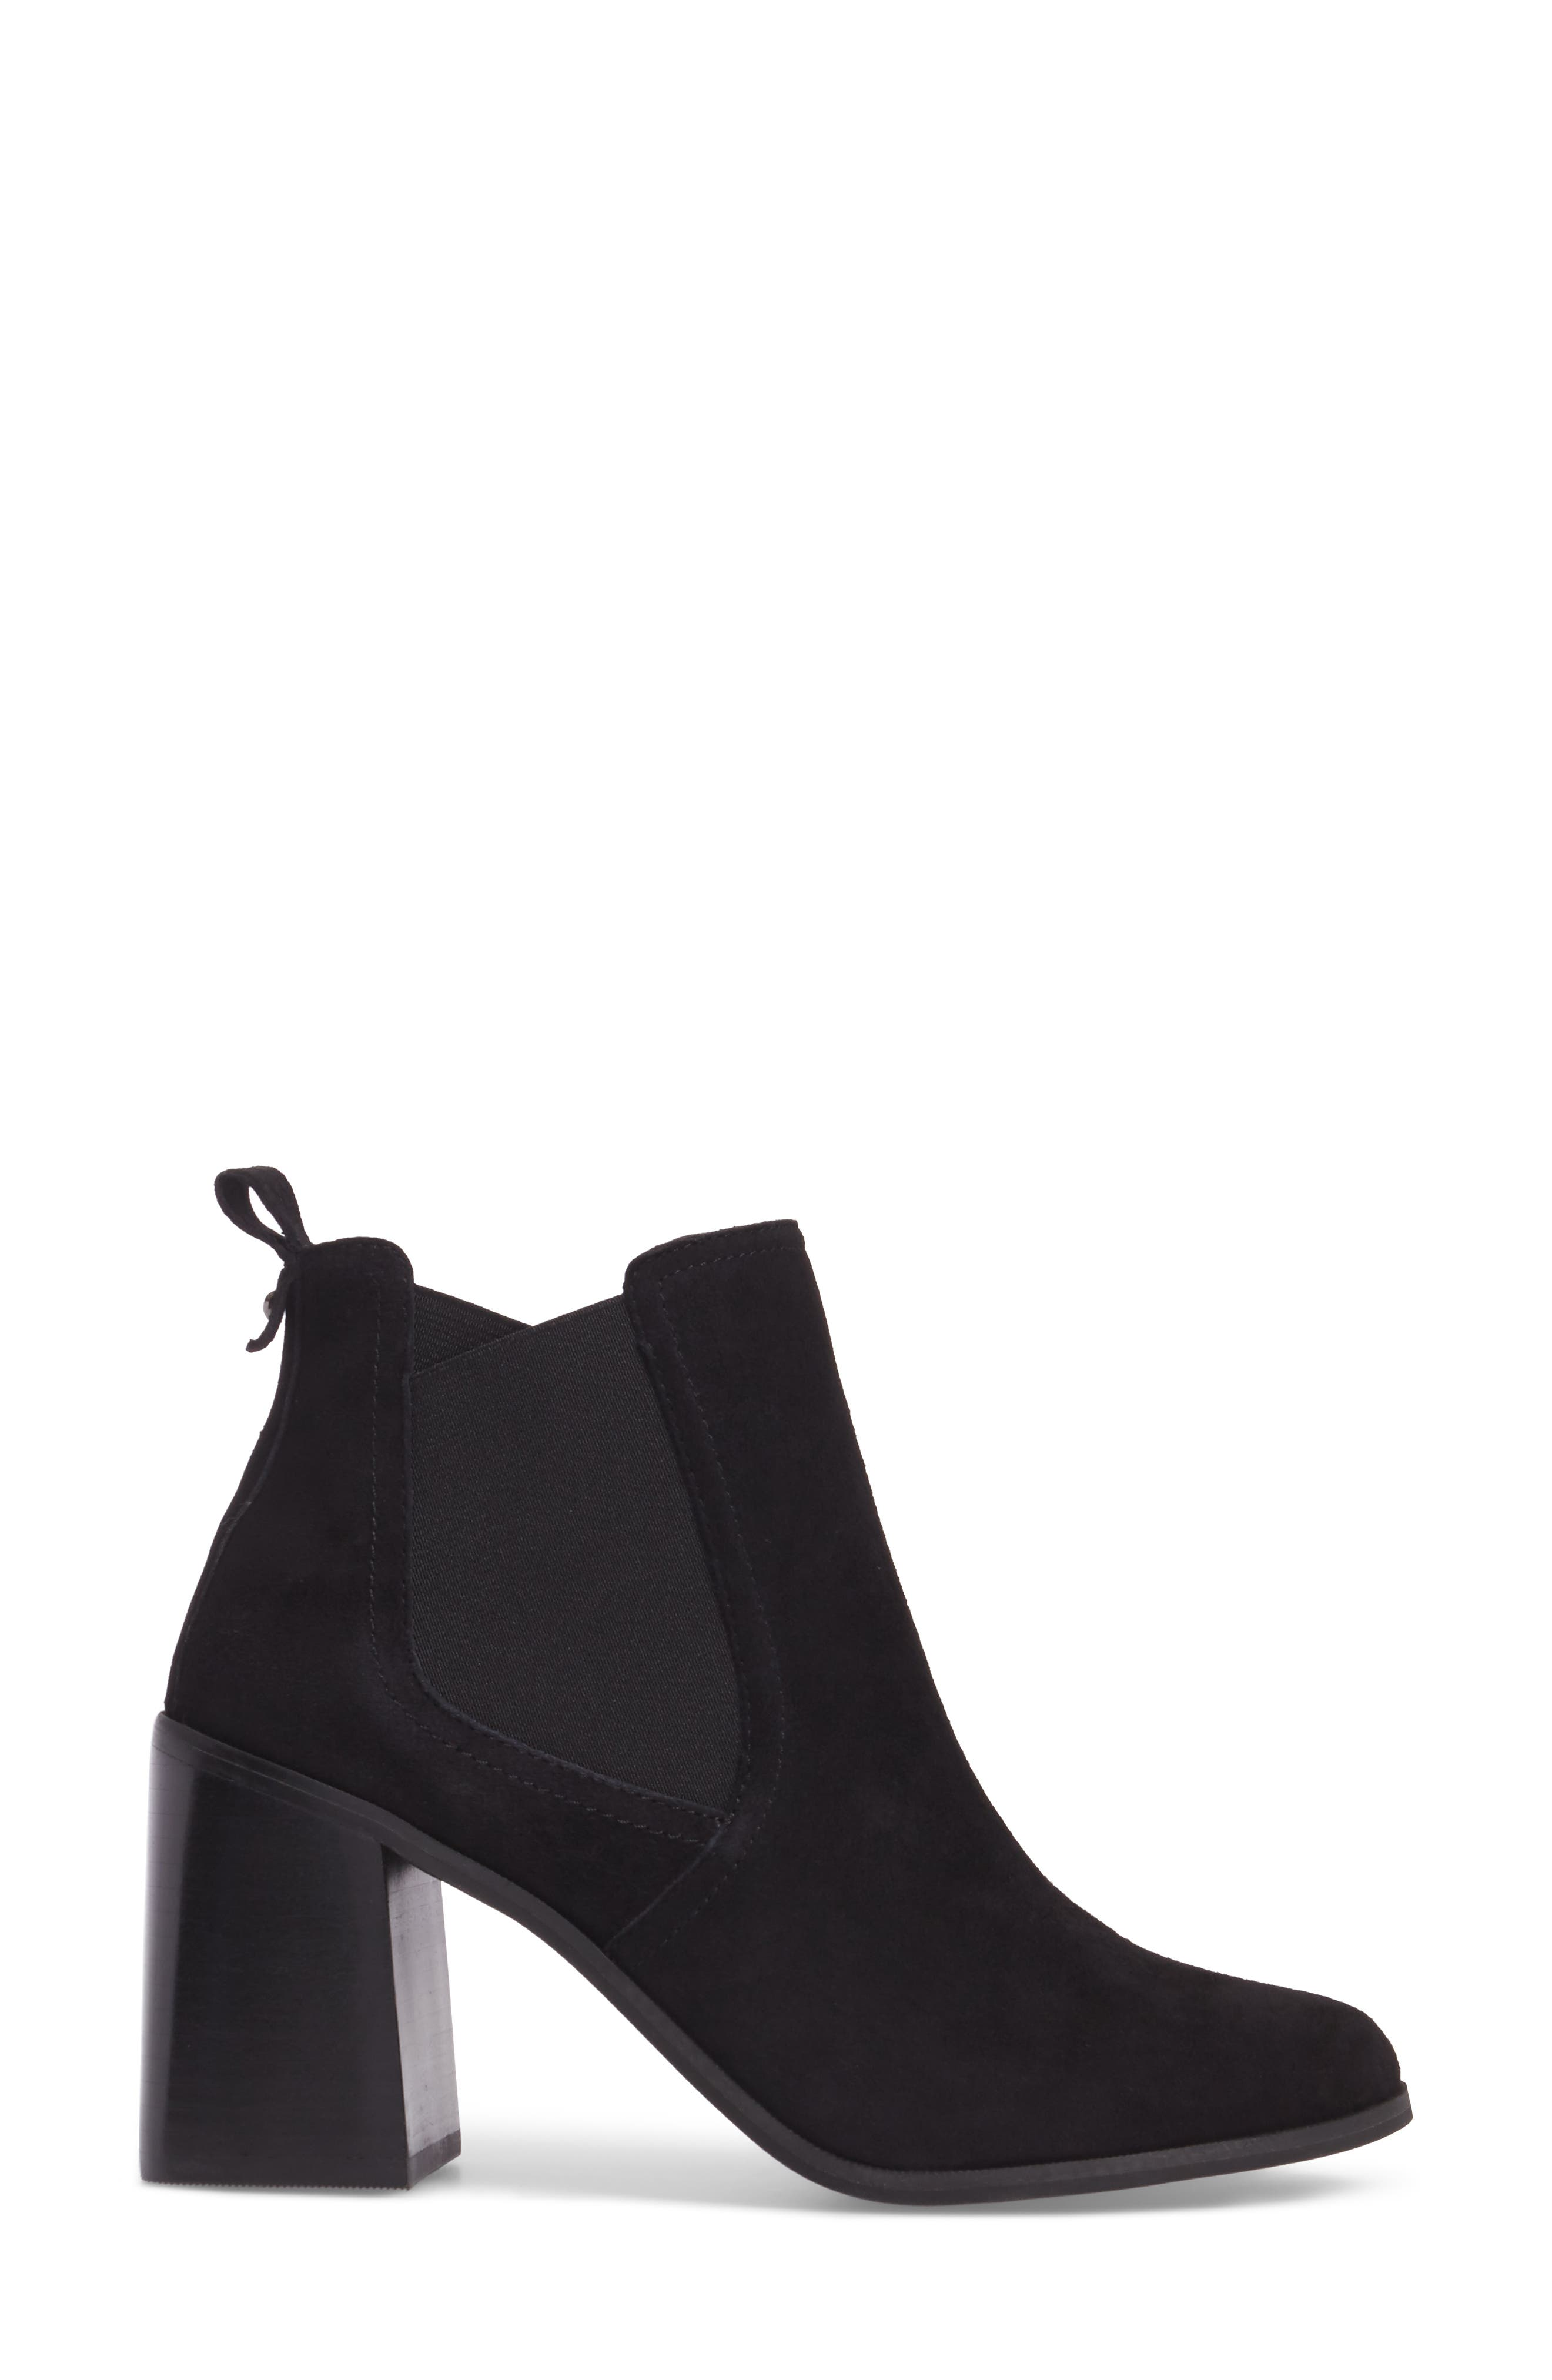 Quinn Flared Heel Chelsea Bootie,                             Alternate thumbnail 4, color,                             Black Suede